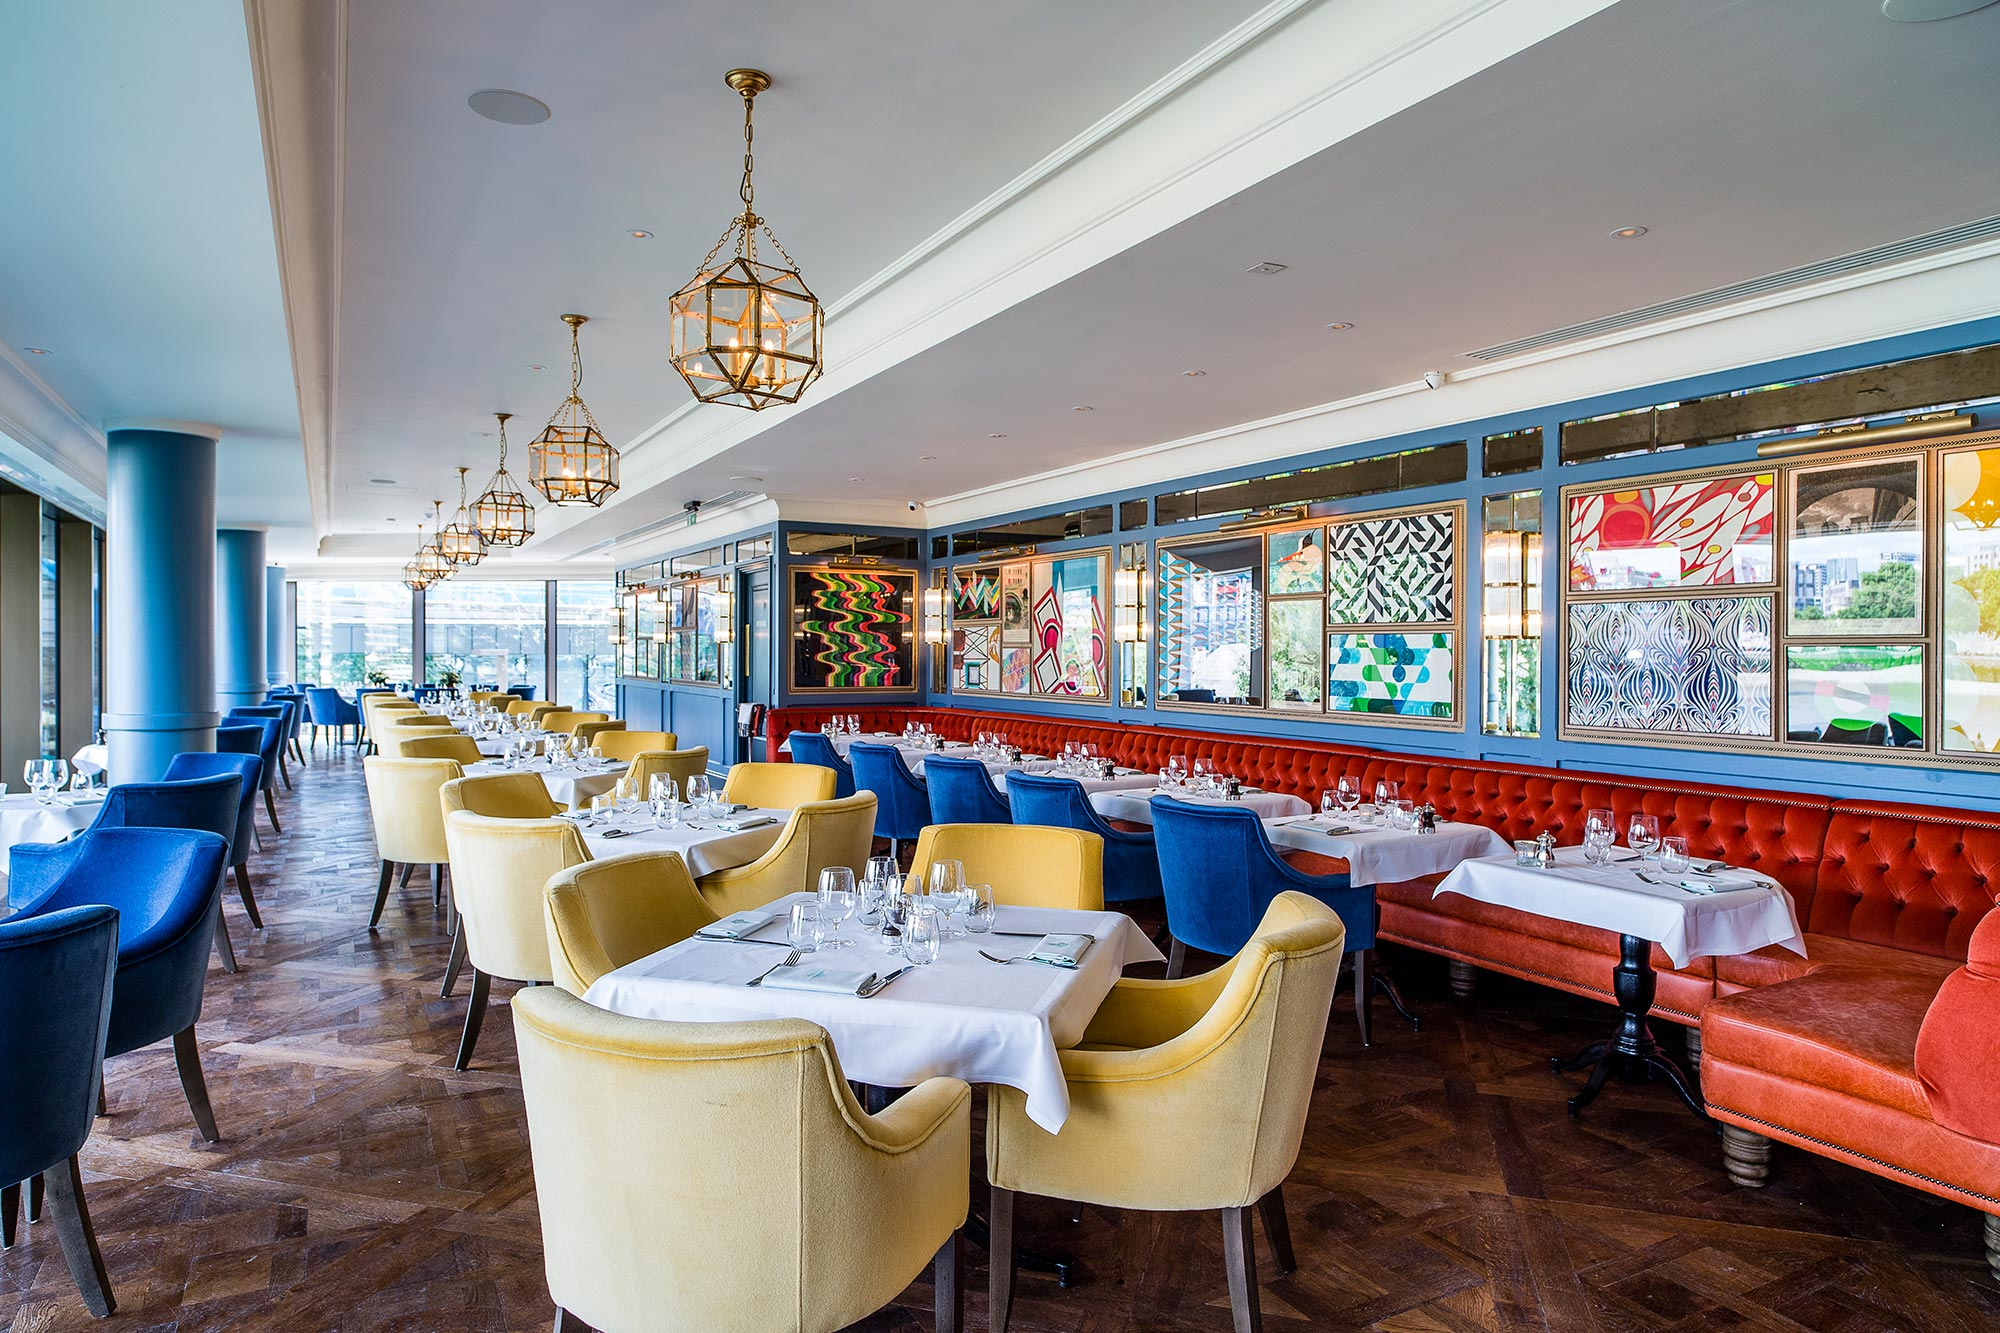 Best restaurants in Tower Bridge - The Ivy Tower Bridge, London - The Ivy Tower Bridge